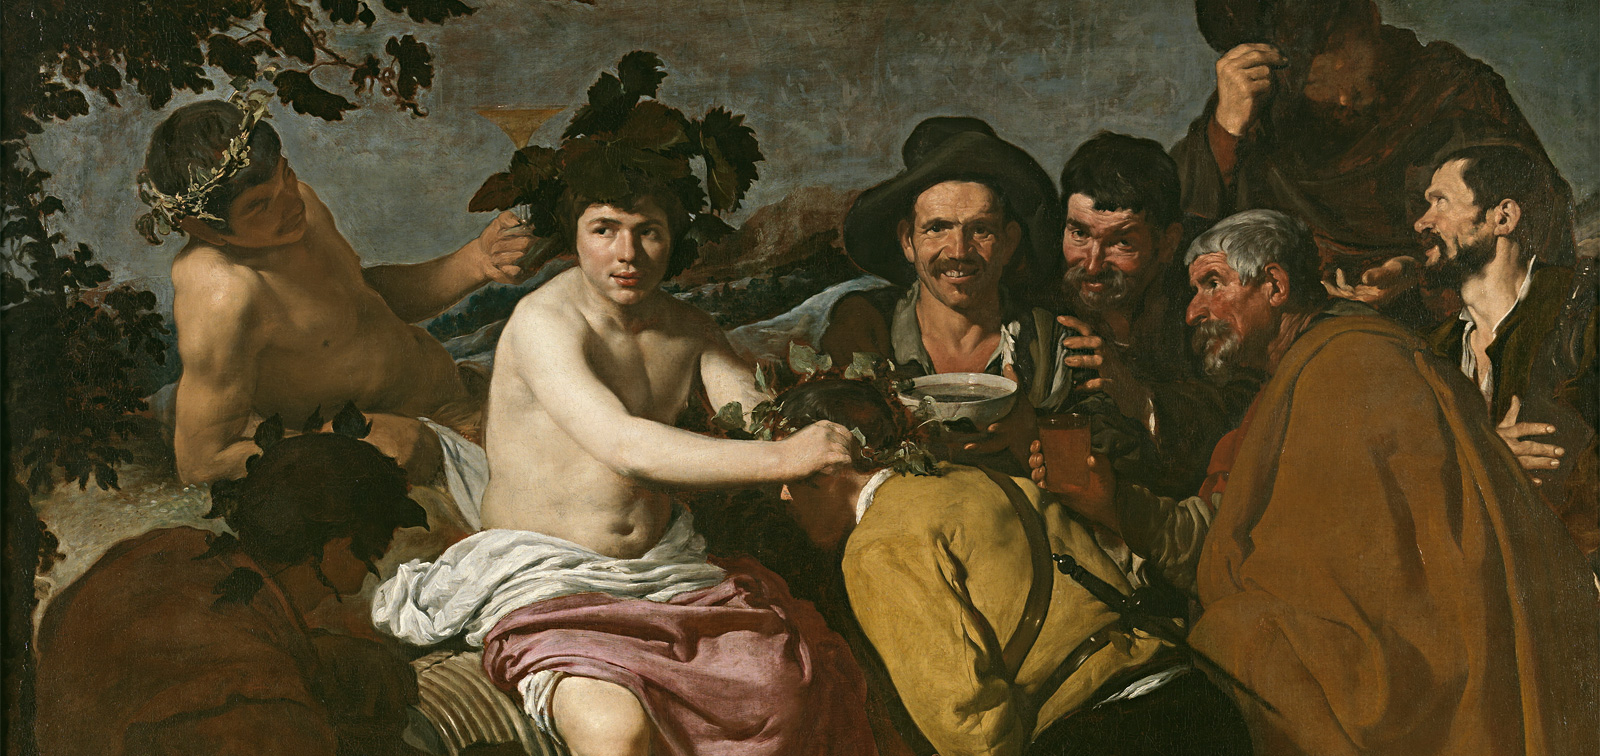 Velázquez's Fables. Mythology and Sacred History in the Golden Age